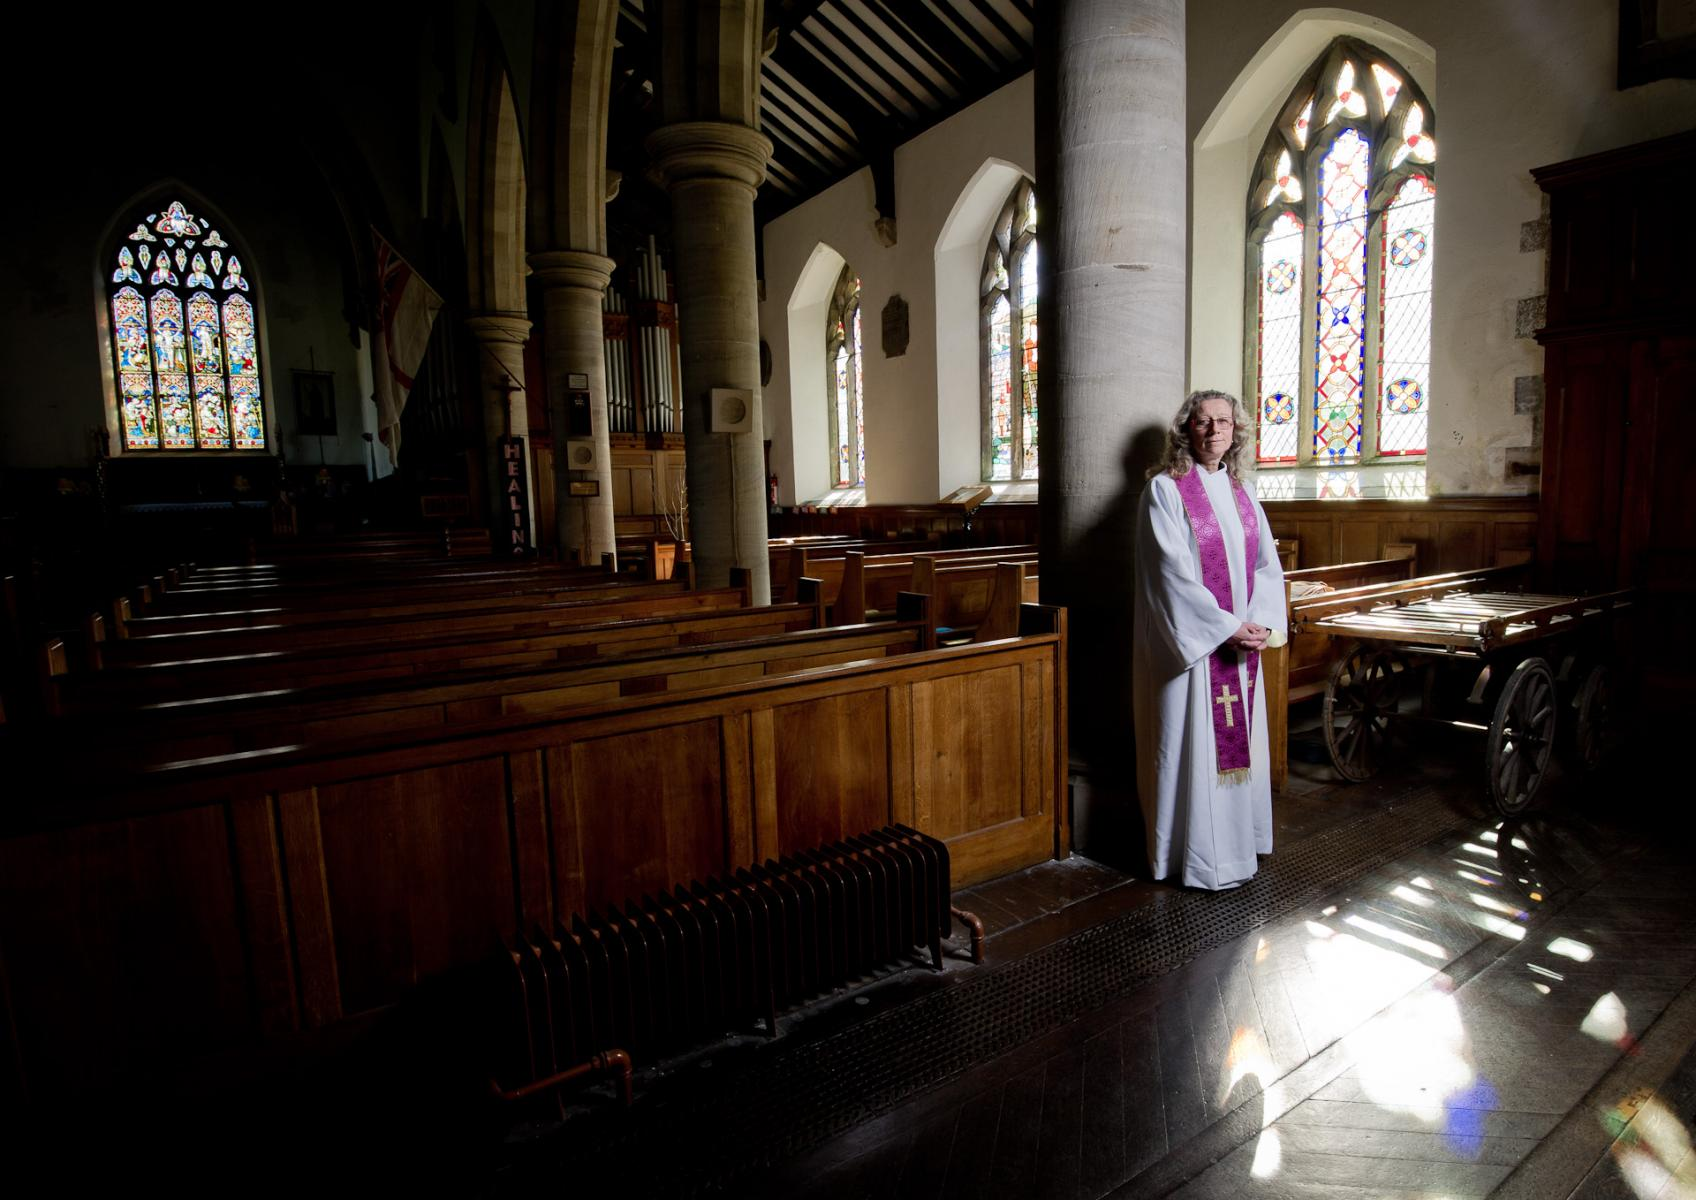 Rev Ann Chapman, priest in charge, parishes of Hawes, Hardraw, Askrigg, Stalling Busk